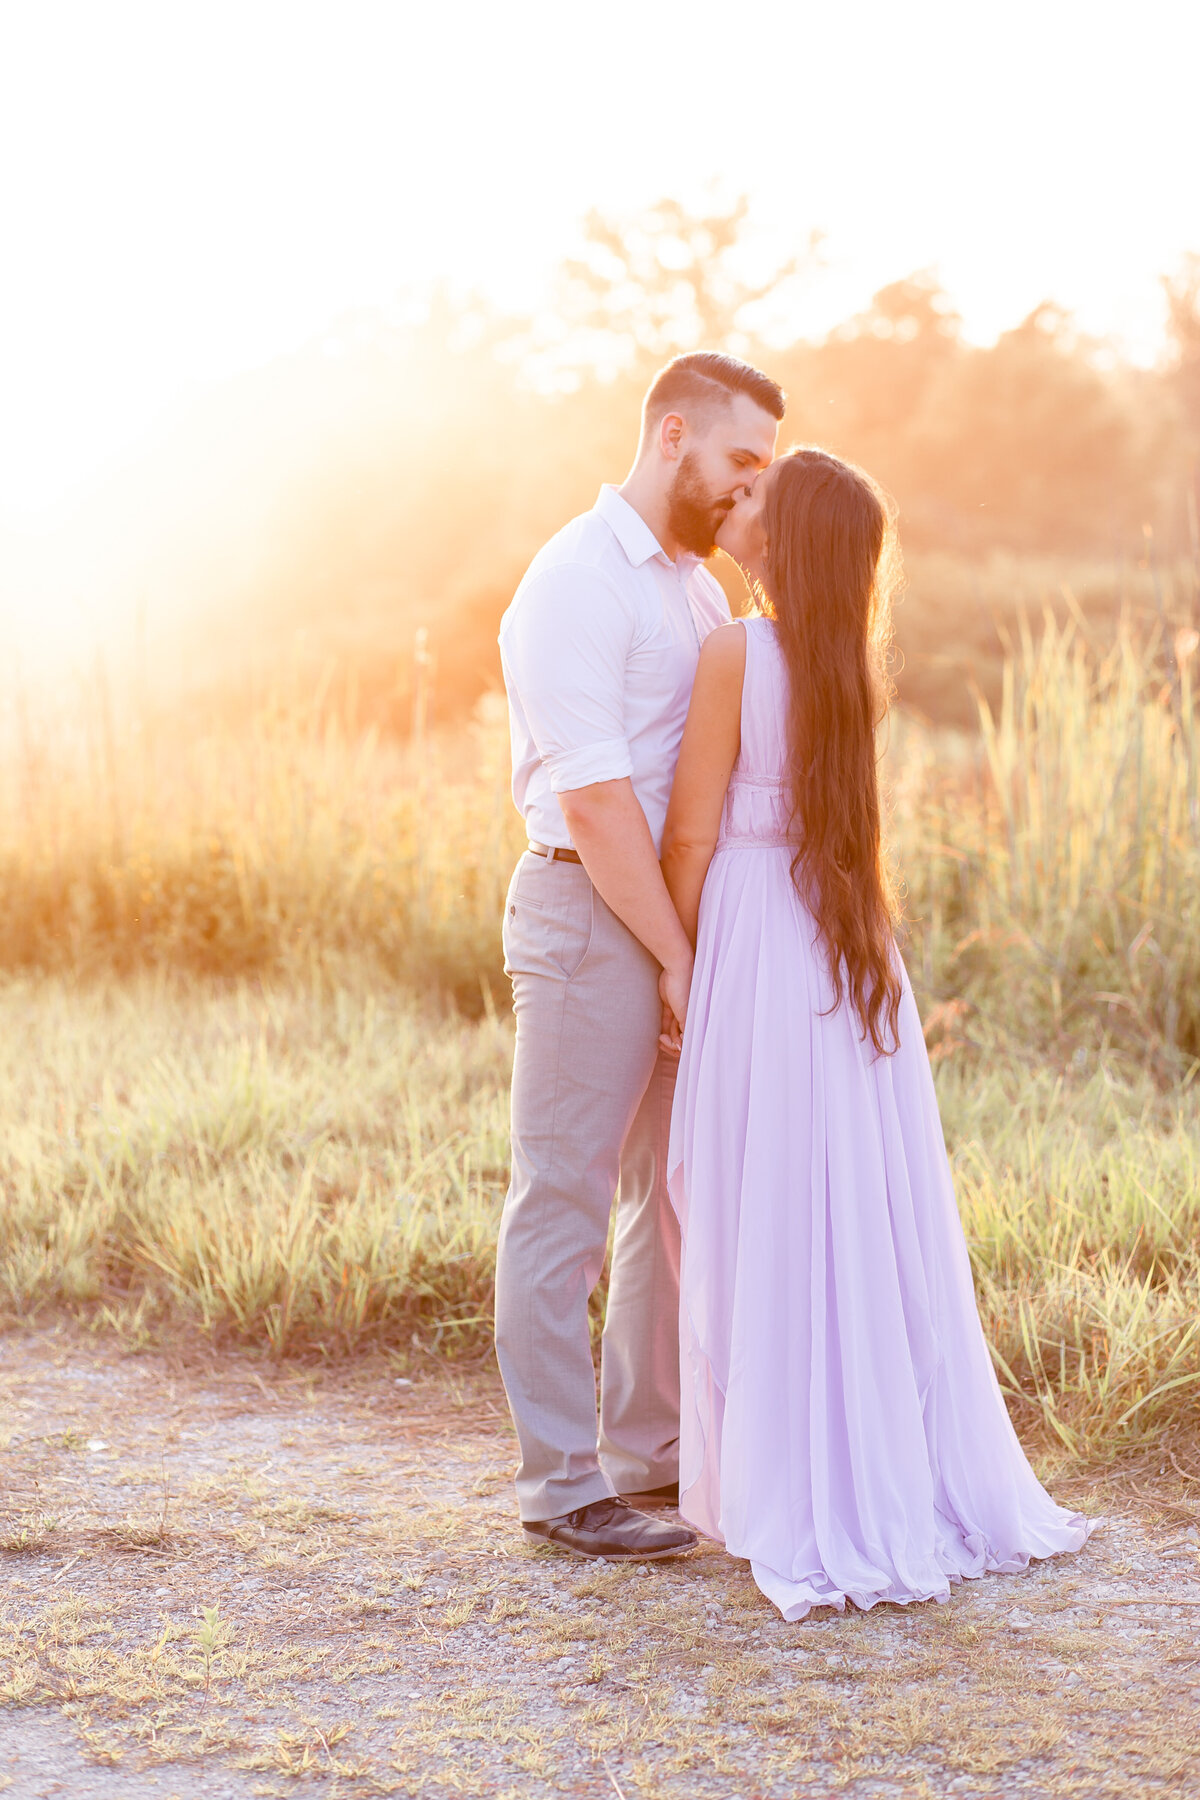 Summer Romantic Sunset Engagement Session guy kissing girl in lavender maxi dress in field on dirt road at Busch Wildlife in St. Louis by Amy Britton Photography Photographer in St. Louis